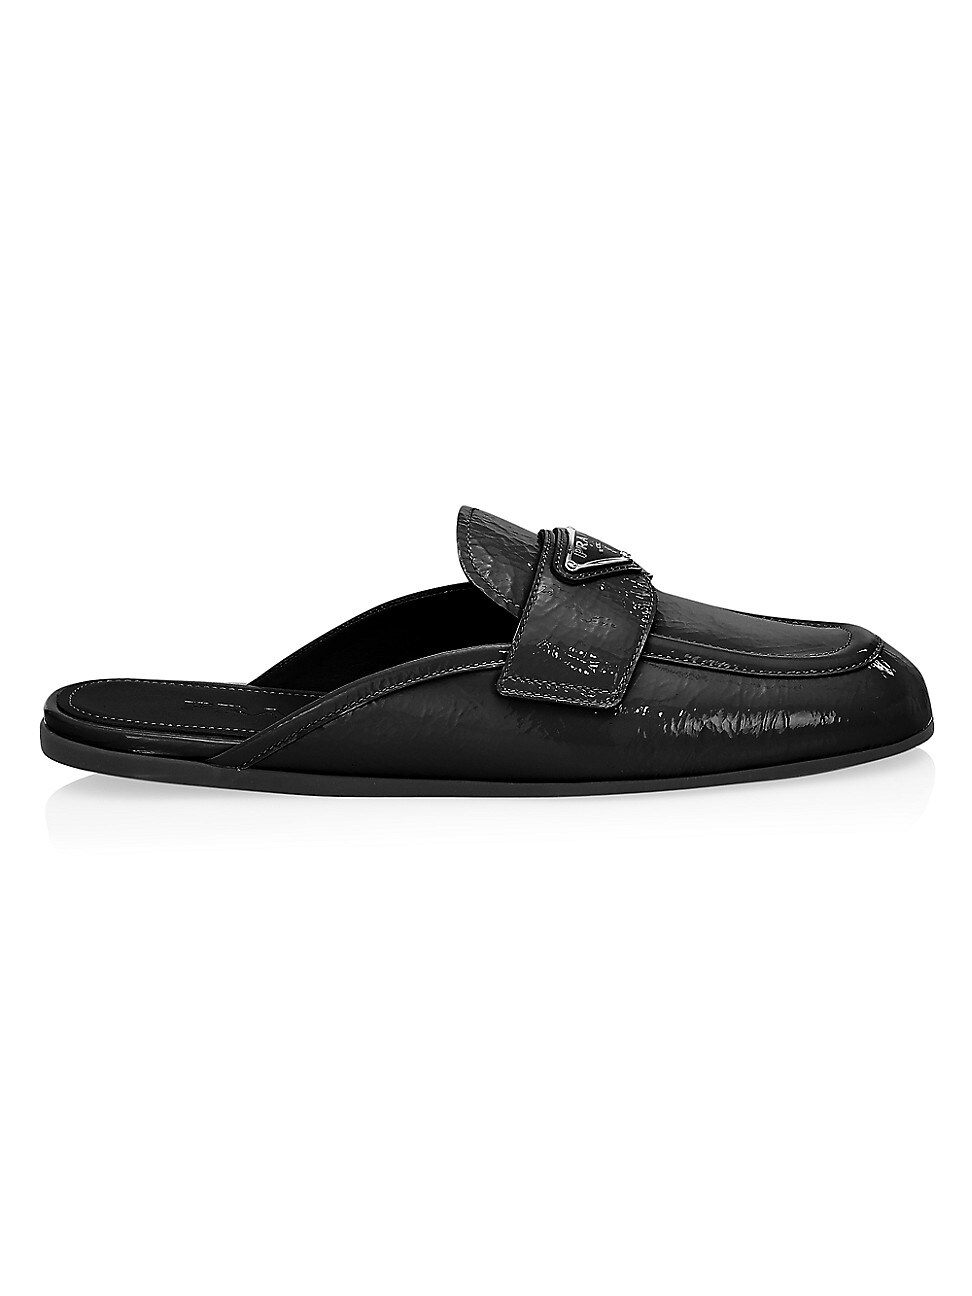 Prada WOMEN'S PATENT LEATHER LOAFER MULES